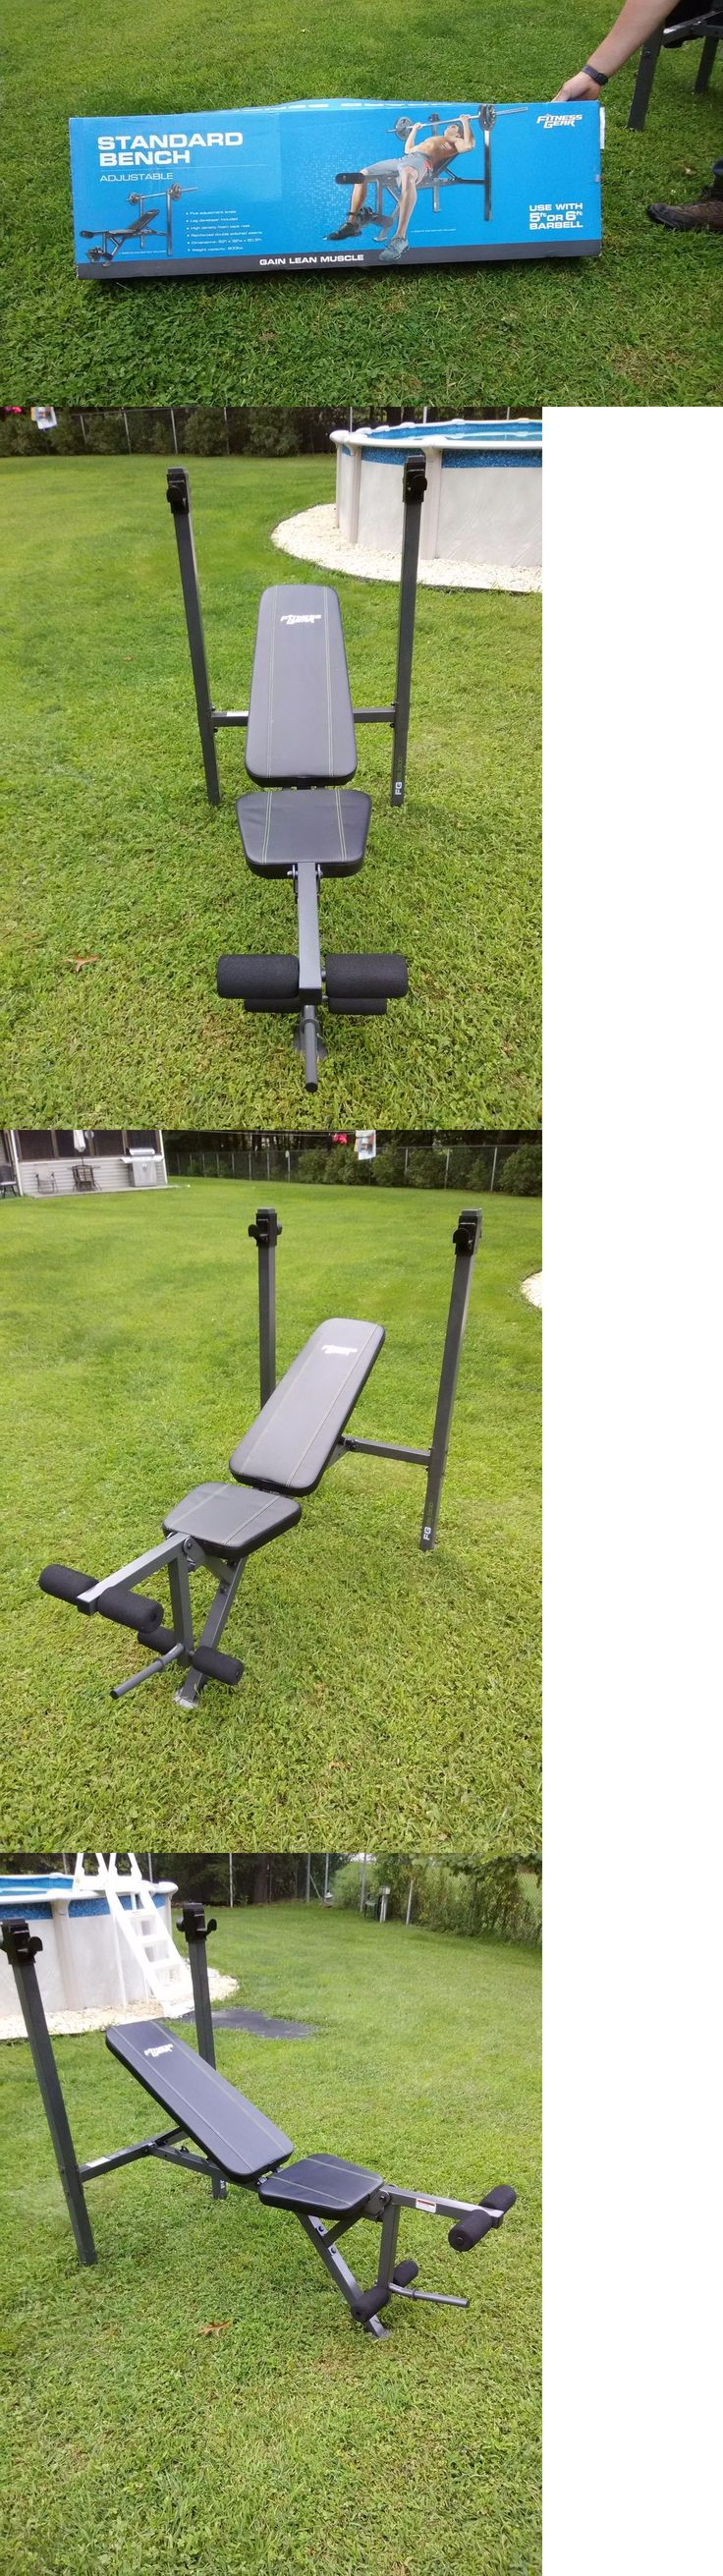 Pull Up Bars 179816: Fitness Edge Work Out Stand Standard New... -> BUY IT NOW ONLY: $59 on eBay!